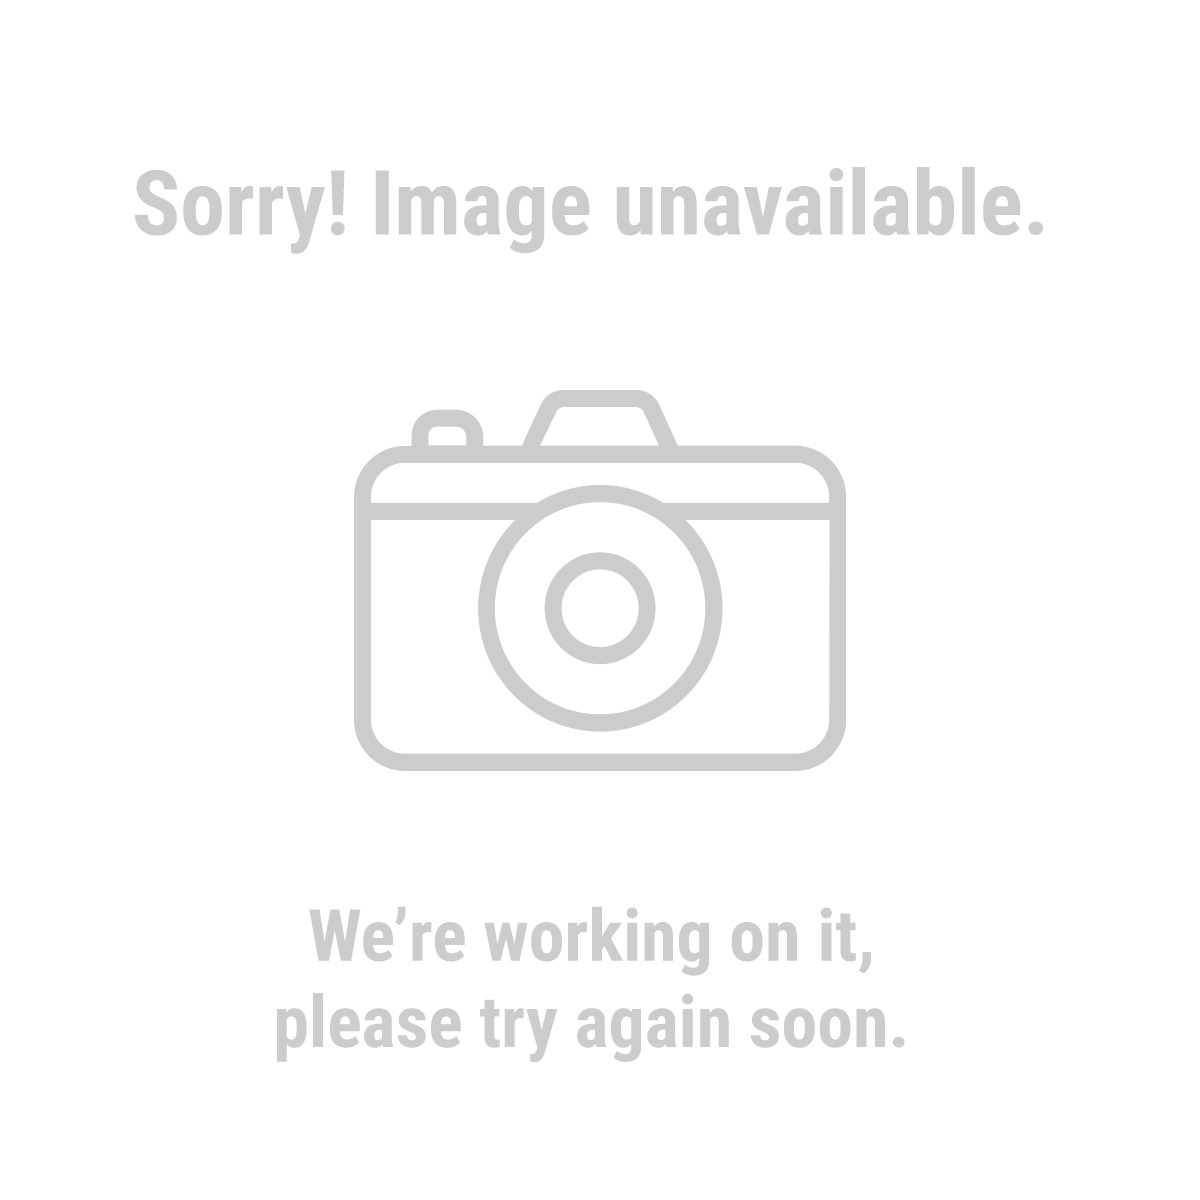 "Haul-Master 96690 15"" Worry Free Tire"